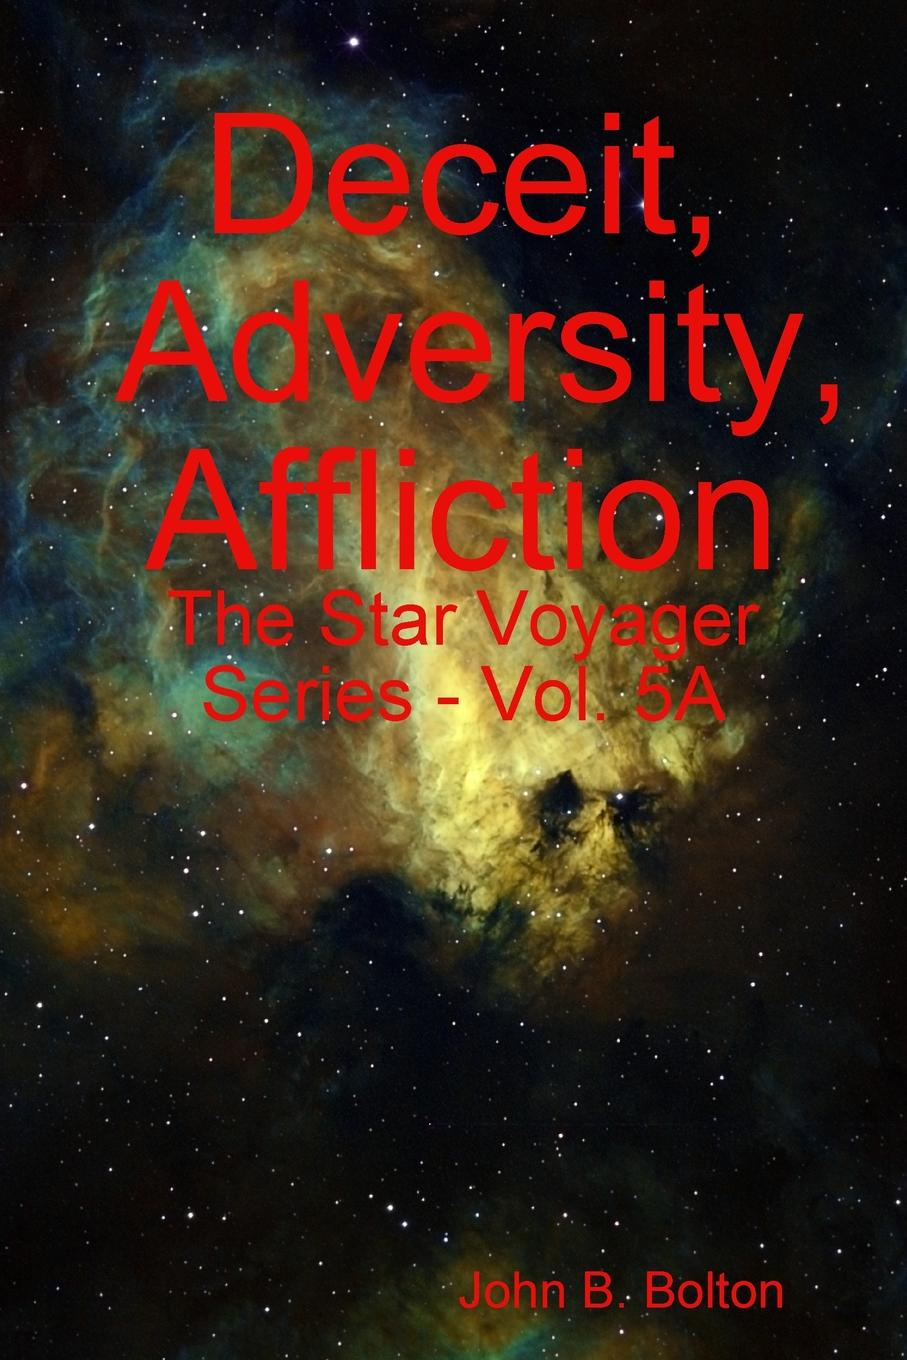 John B. Bolton Deceit, Adversity, Affliction - The Star Voyager Series - Vol. 5A рубашка affliction affliction af405emaojy1